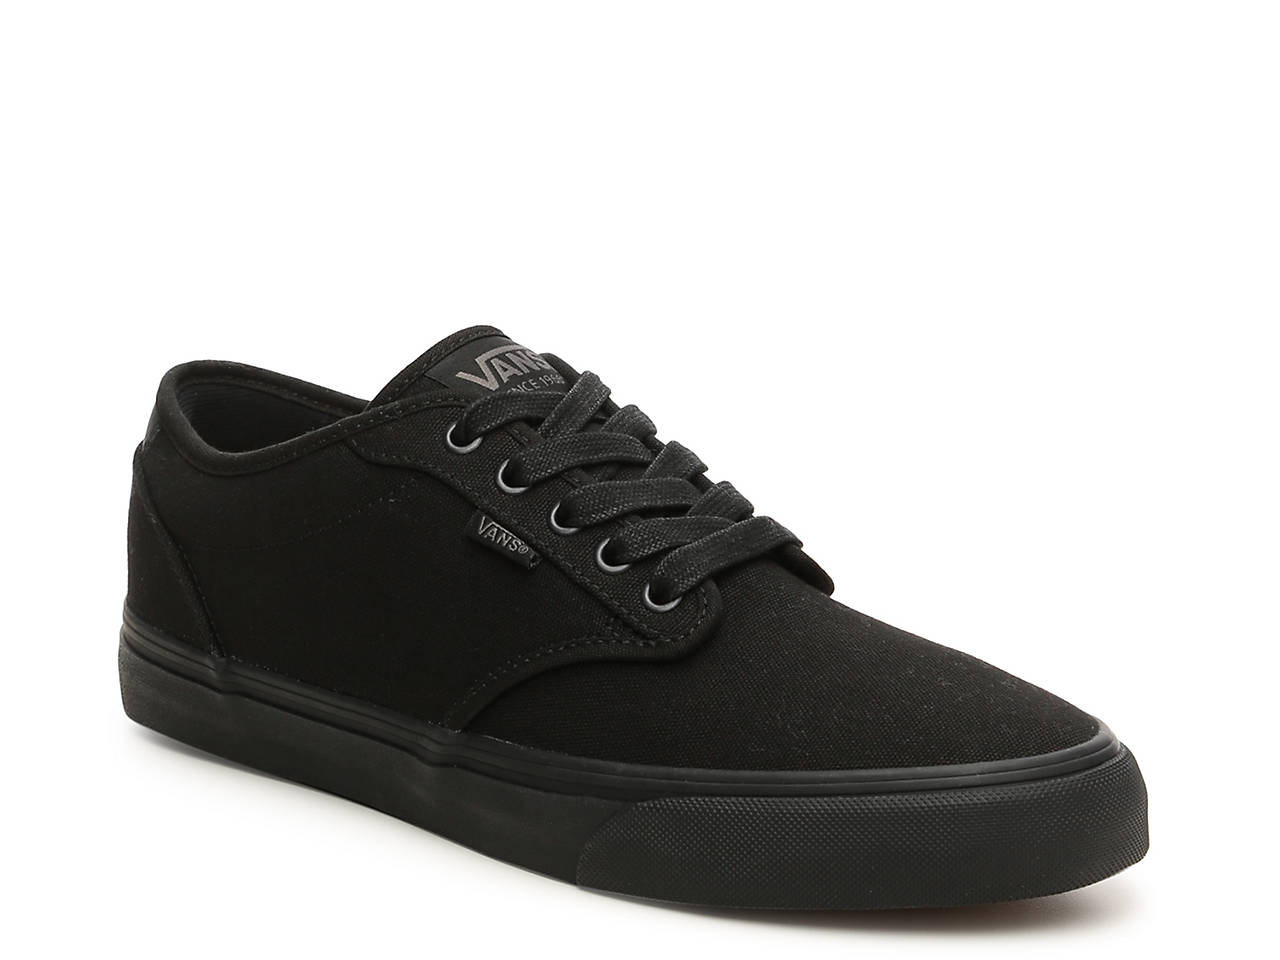 Vans Atwood Deluxe Sneaker - Men s Men s Shoes  3139c27b3